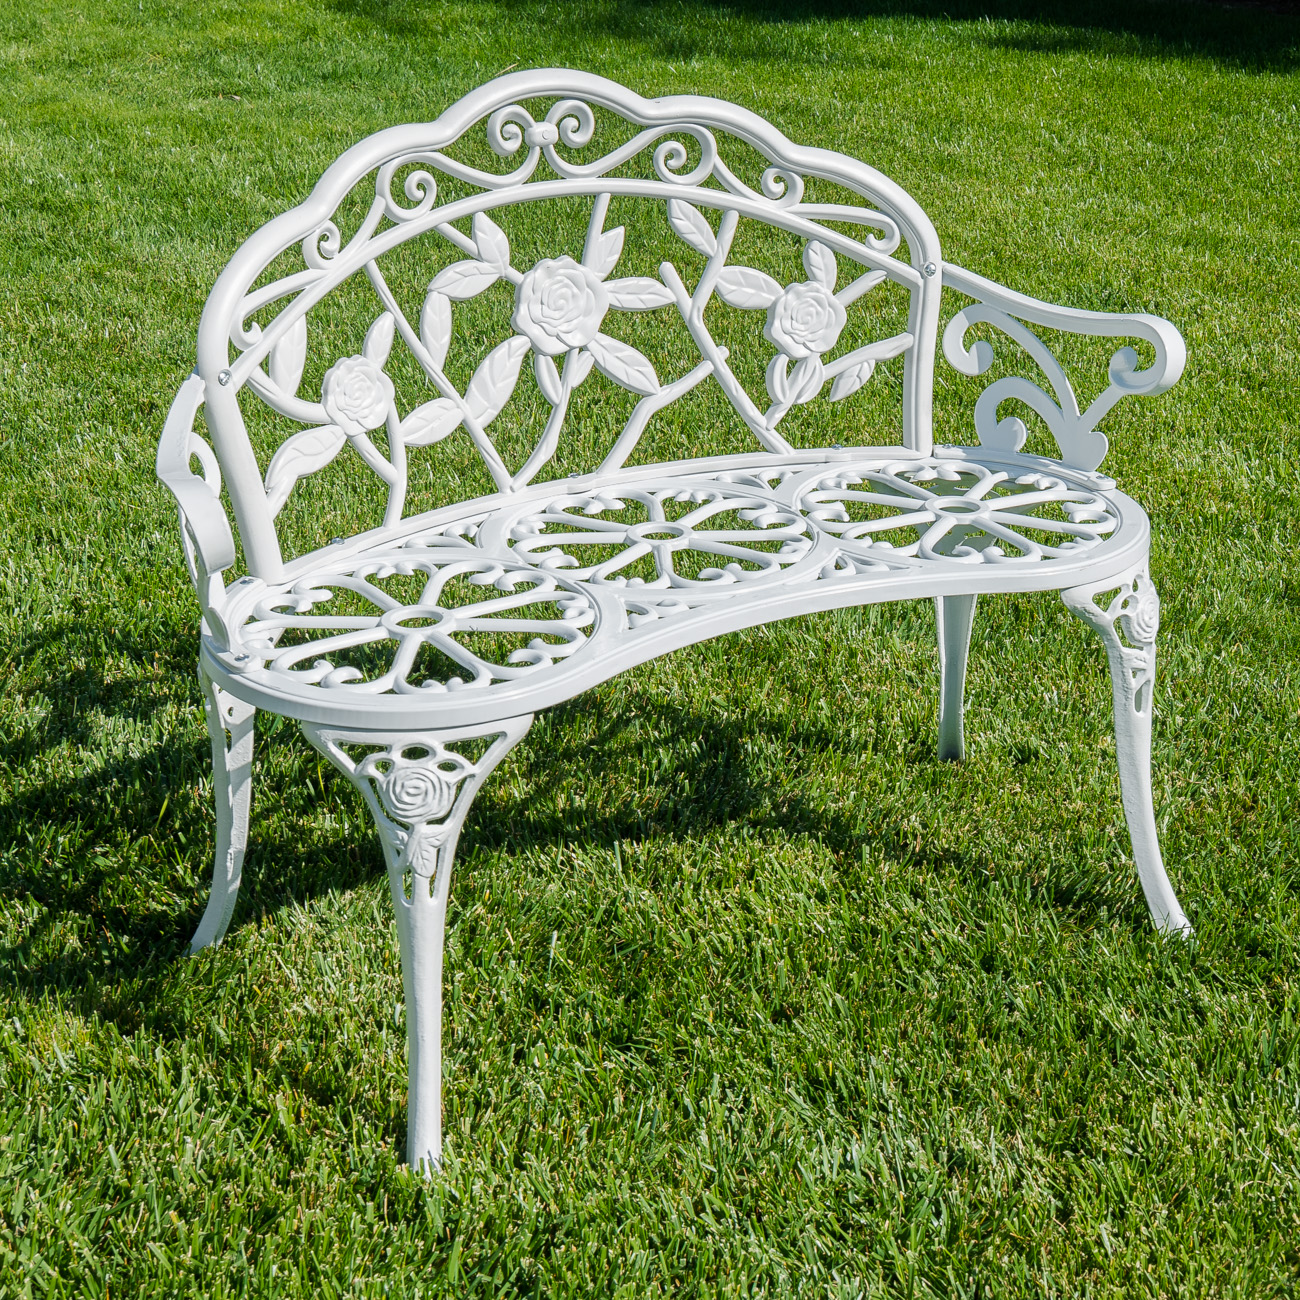 39 white antique style patio porch garden bench aluminum outdoor chair rose new ebay Aluminum benches